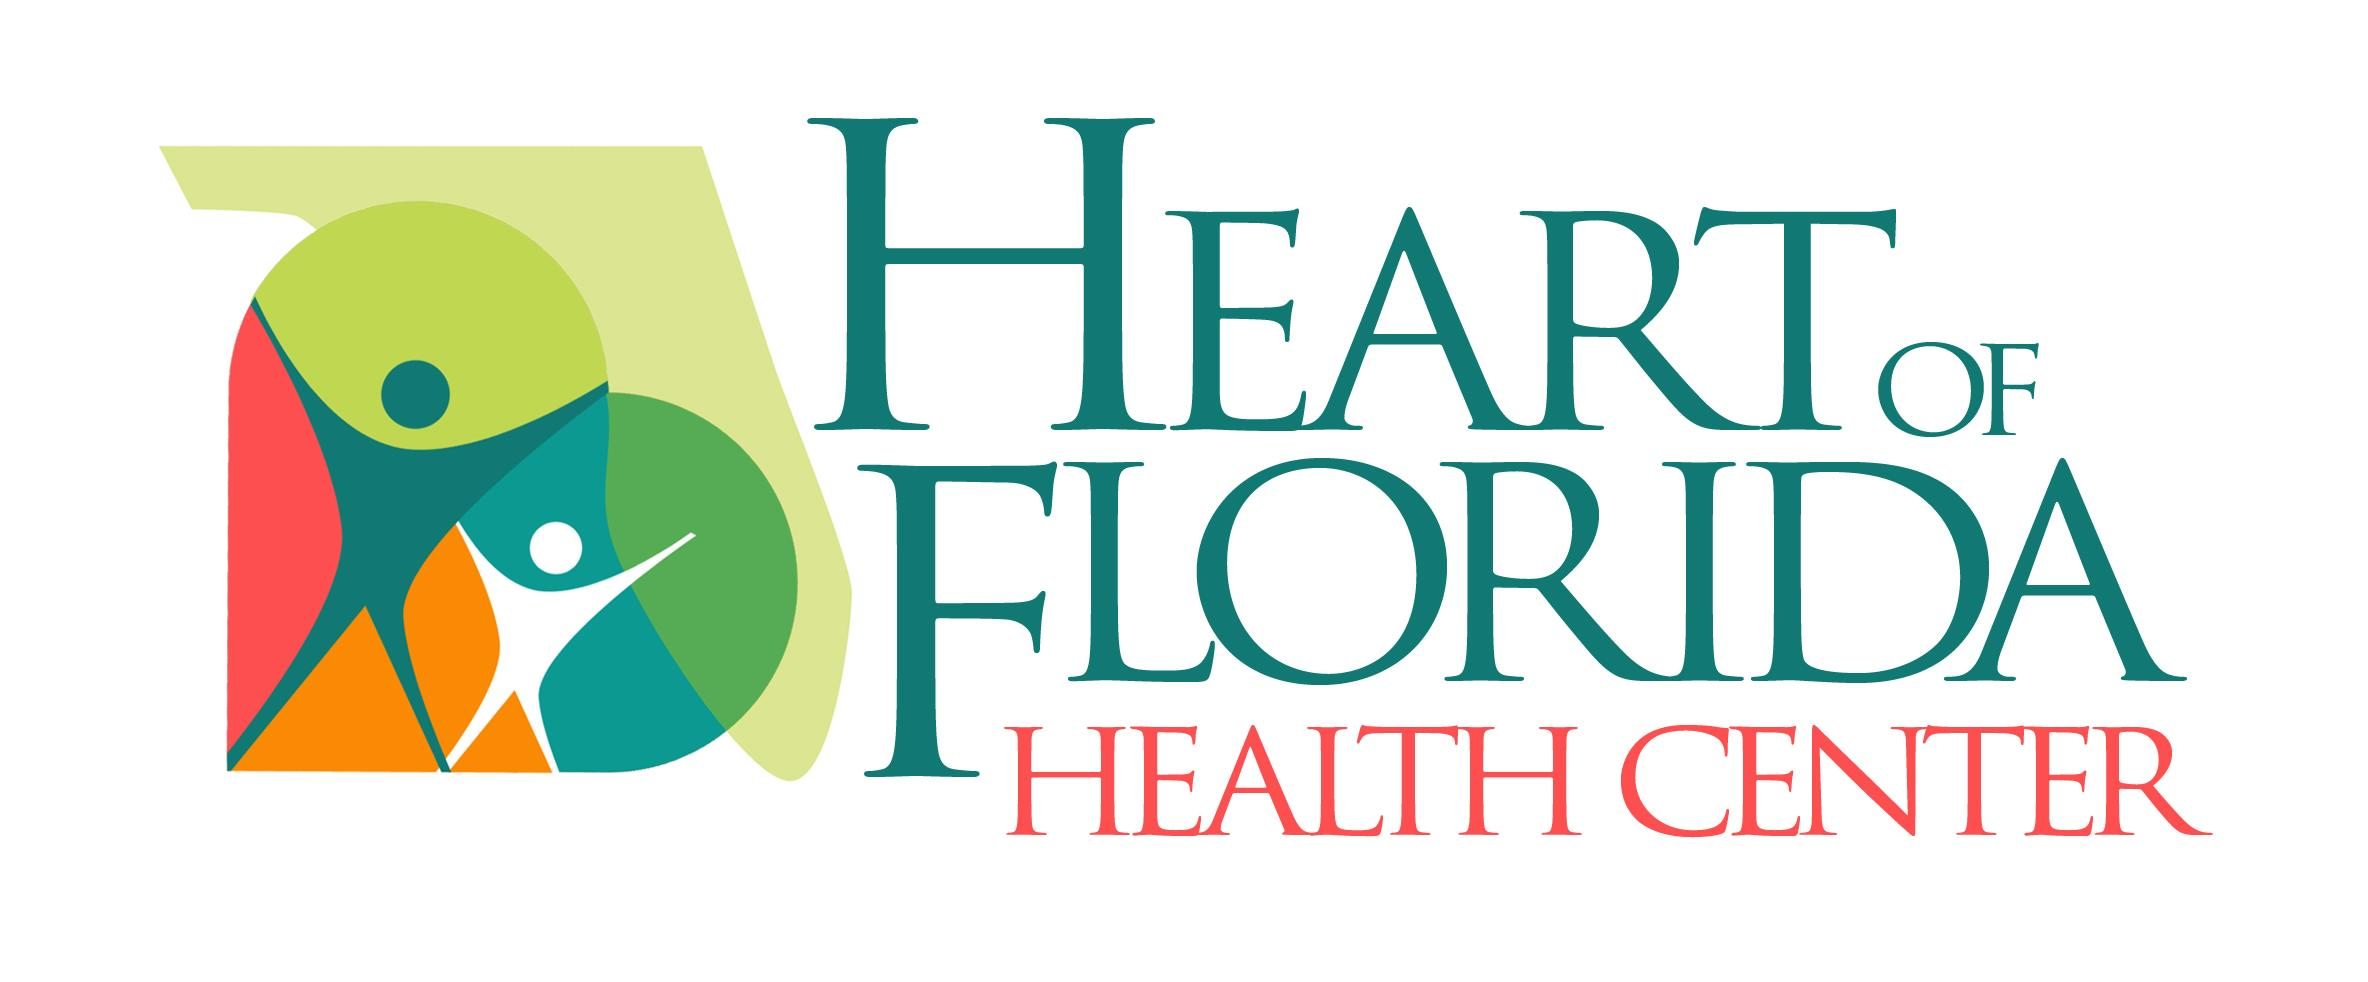 Heart of Florida Health Center - East